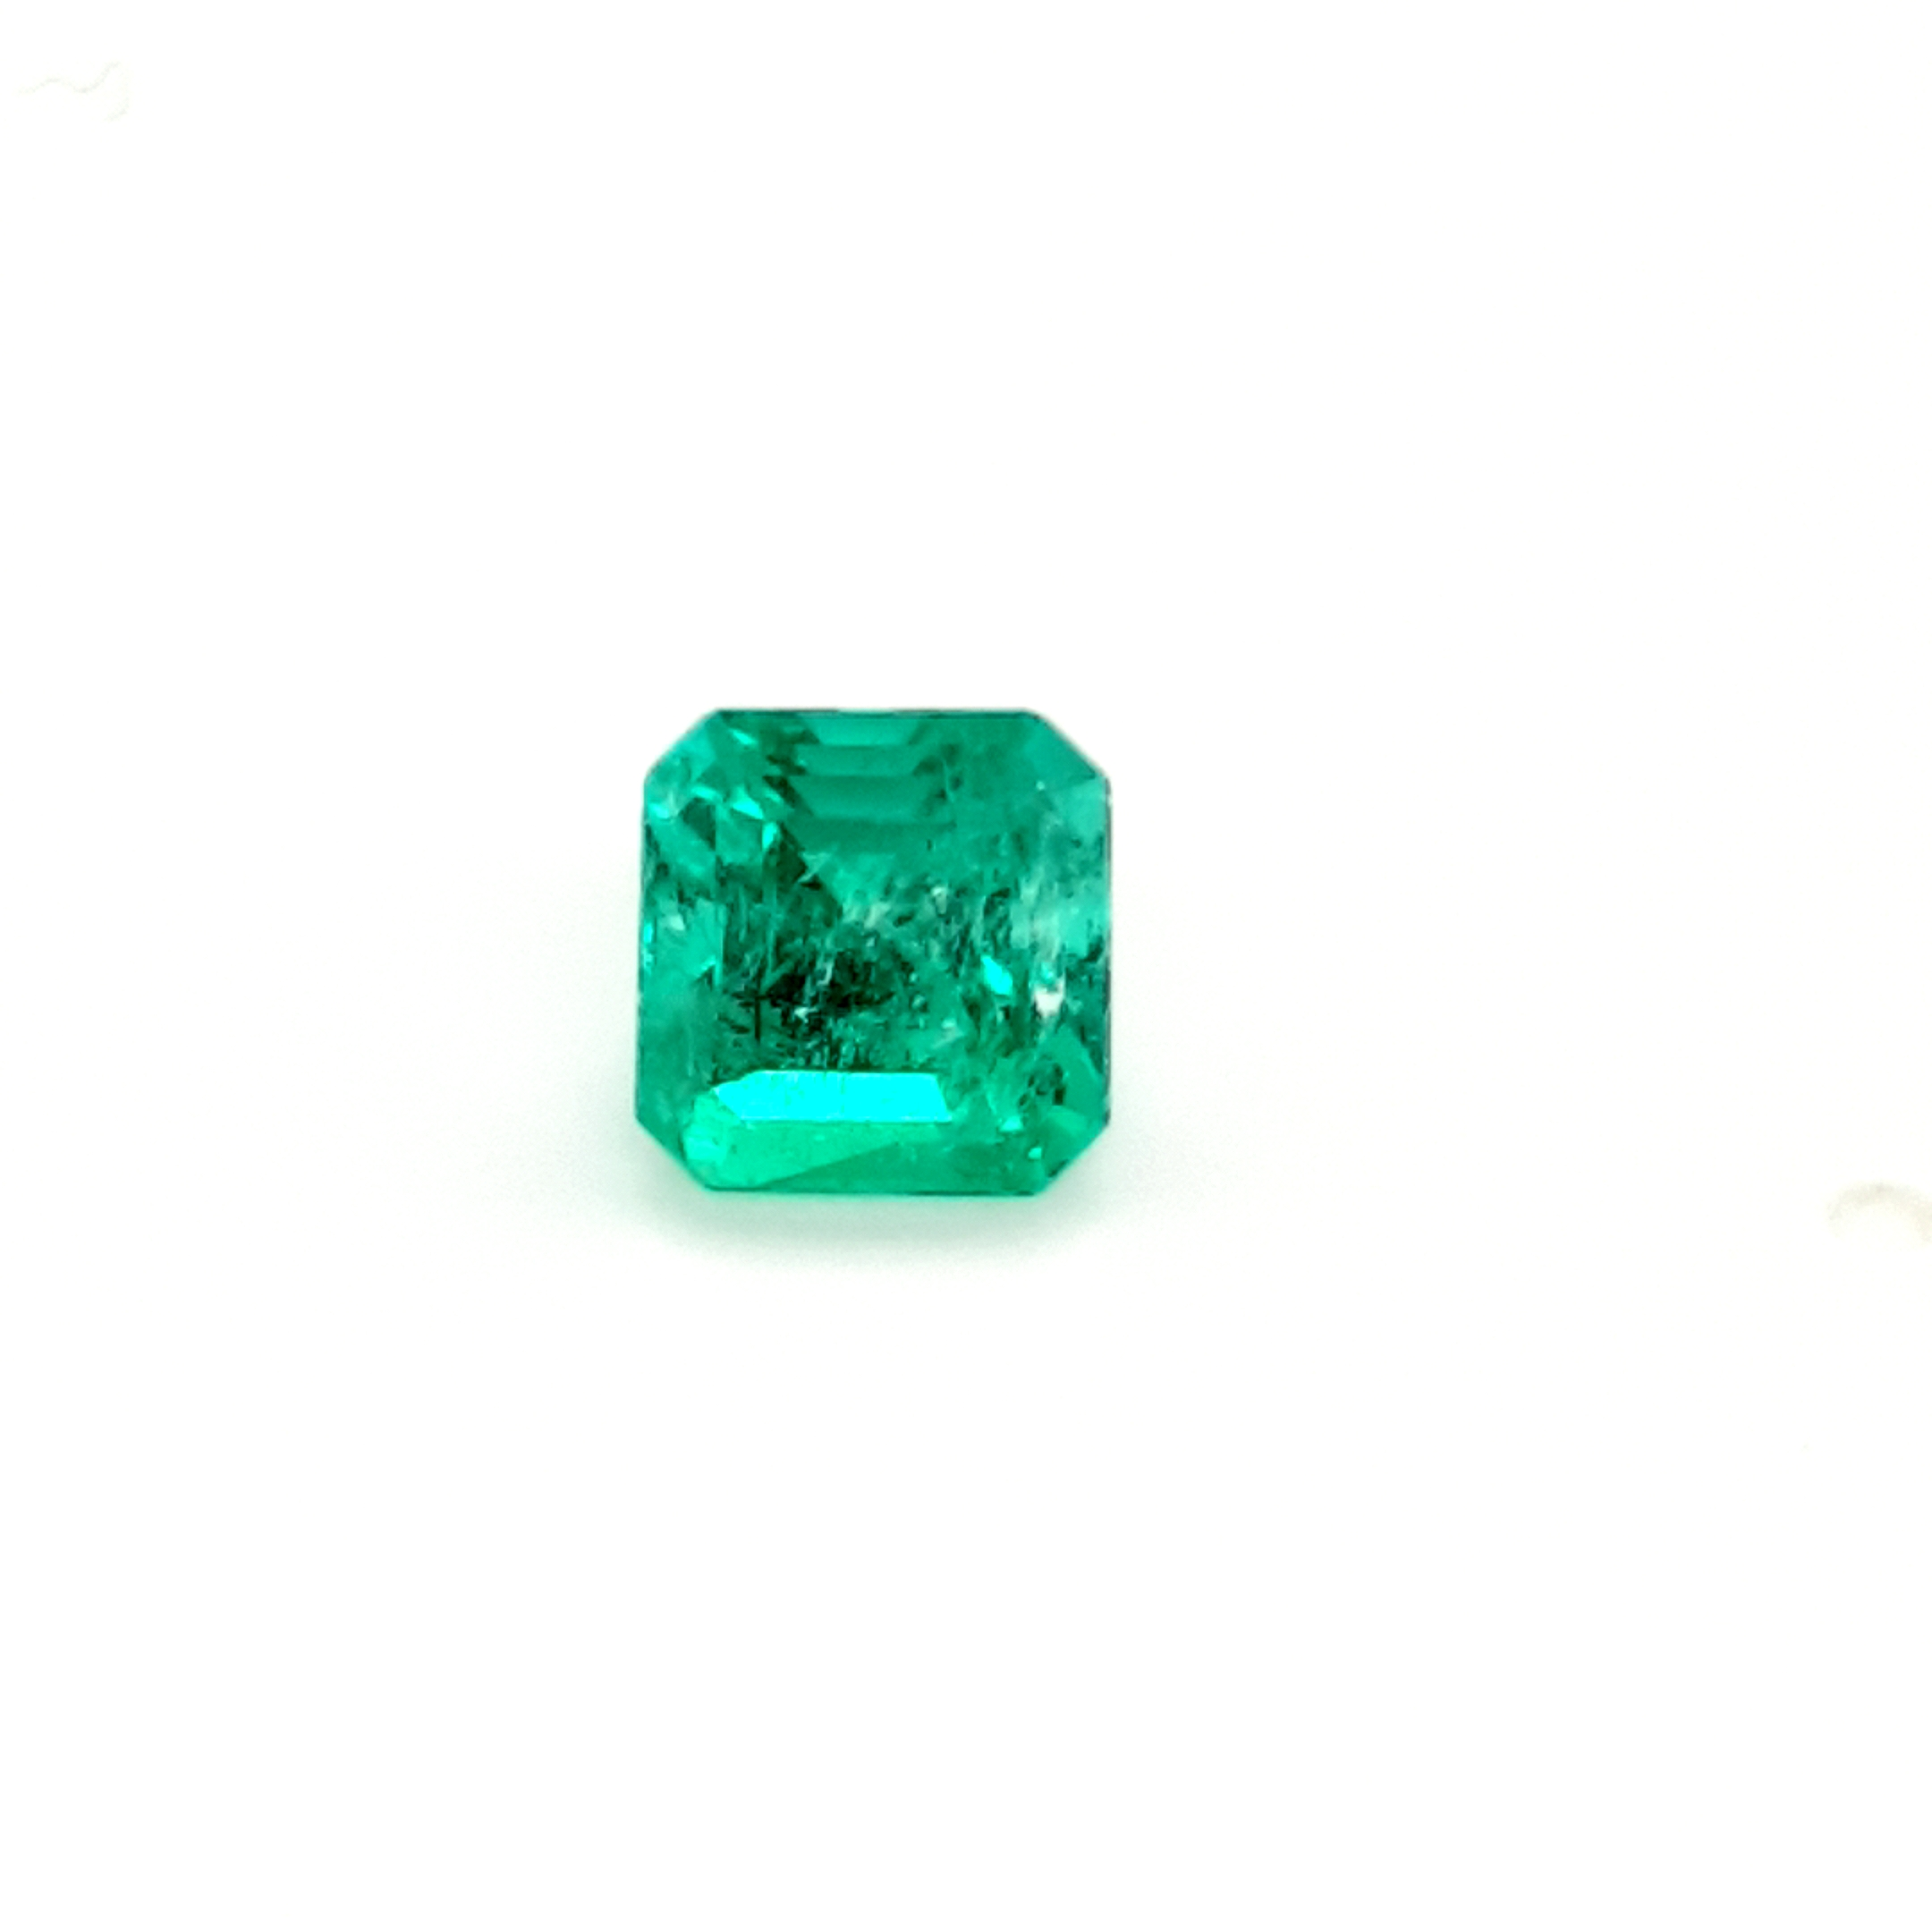 2,55ct. Emerald from Colombia EML13D27 ClaudiaHamann__2021-03-26-00-47-11